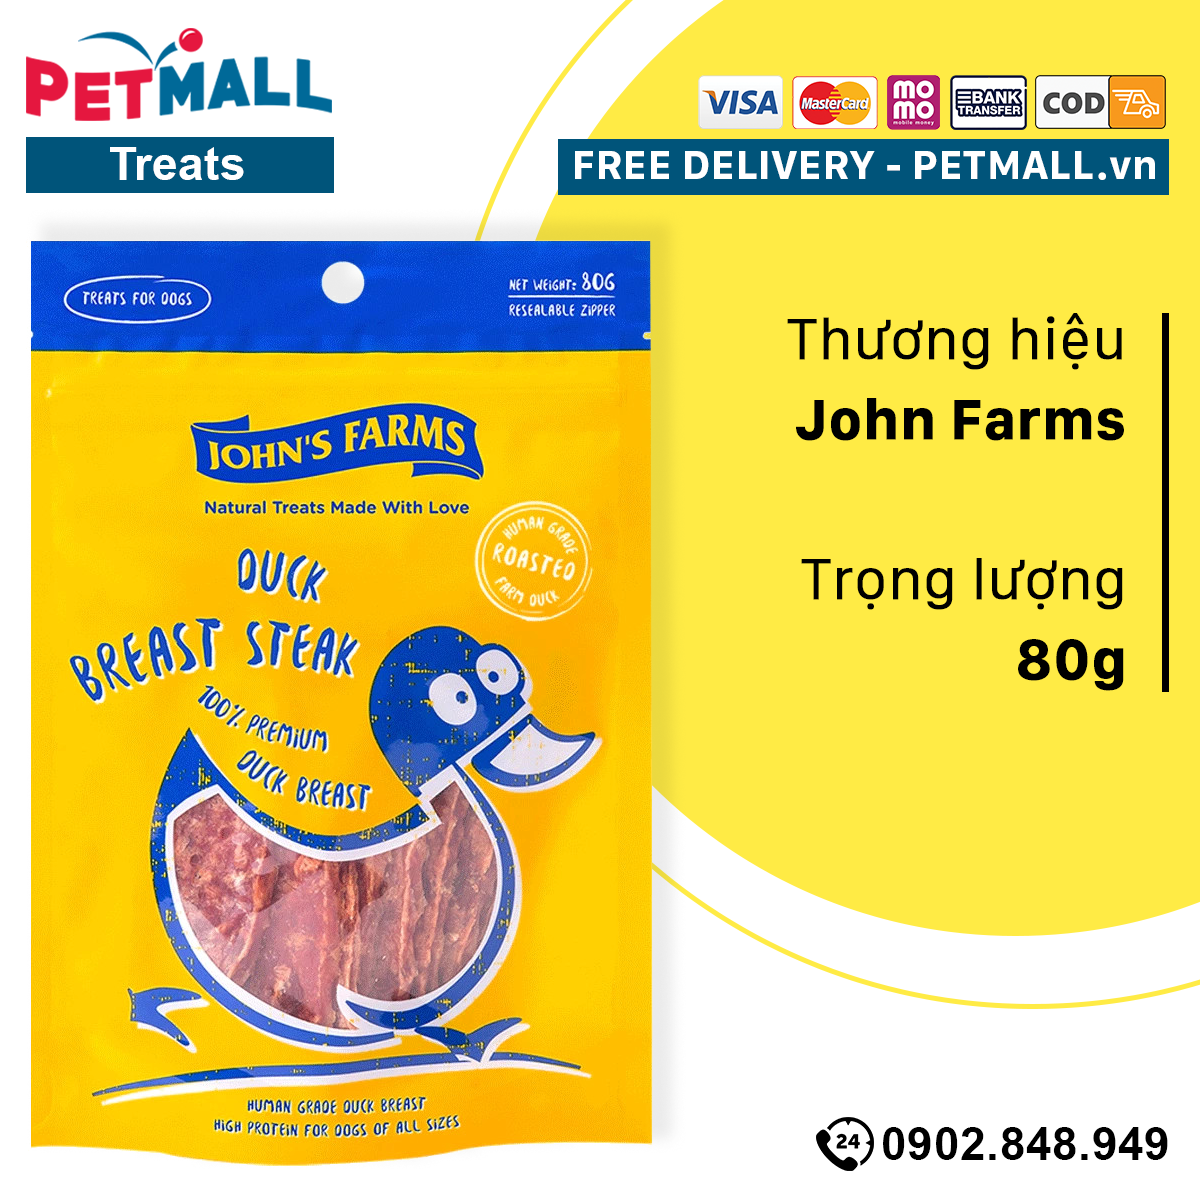 Treats chó John Farms Tender Jerky Dog Treats Made with Real Duck - 80g - thịt vịt